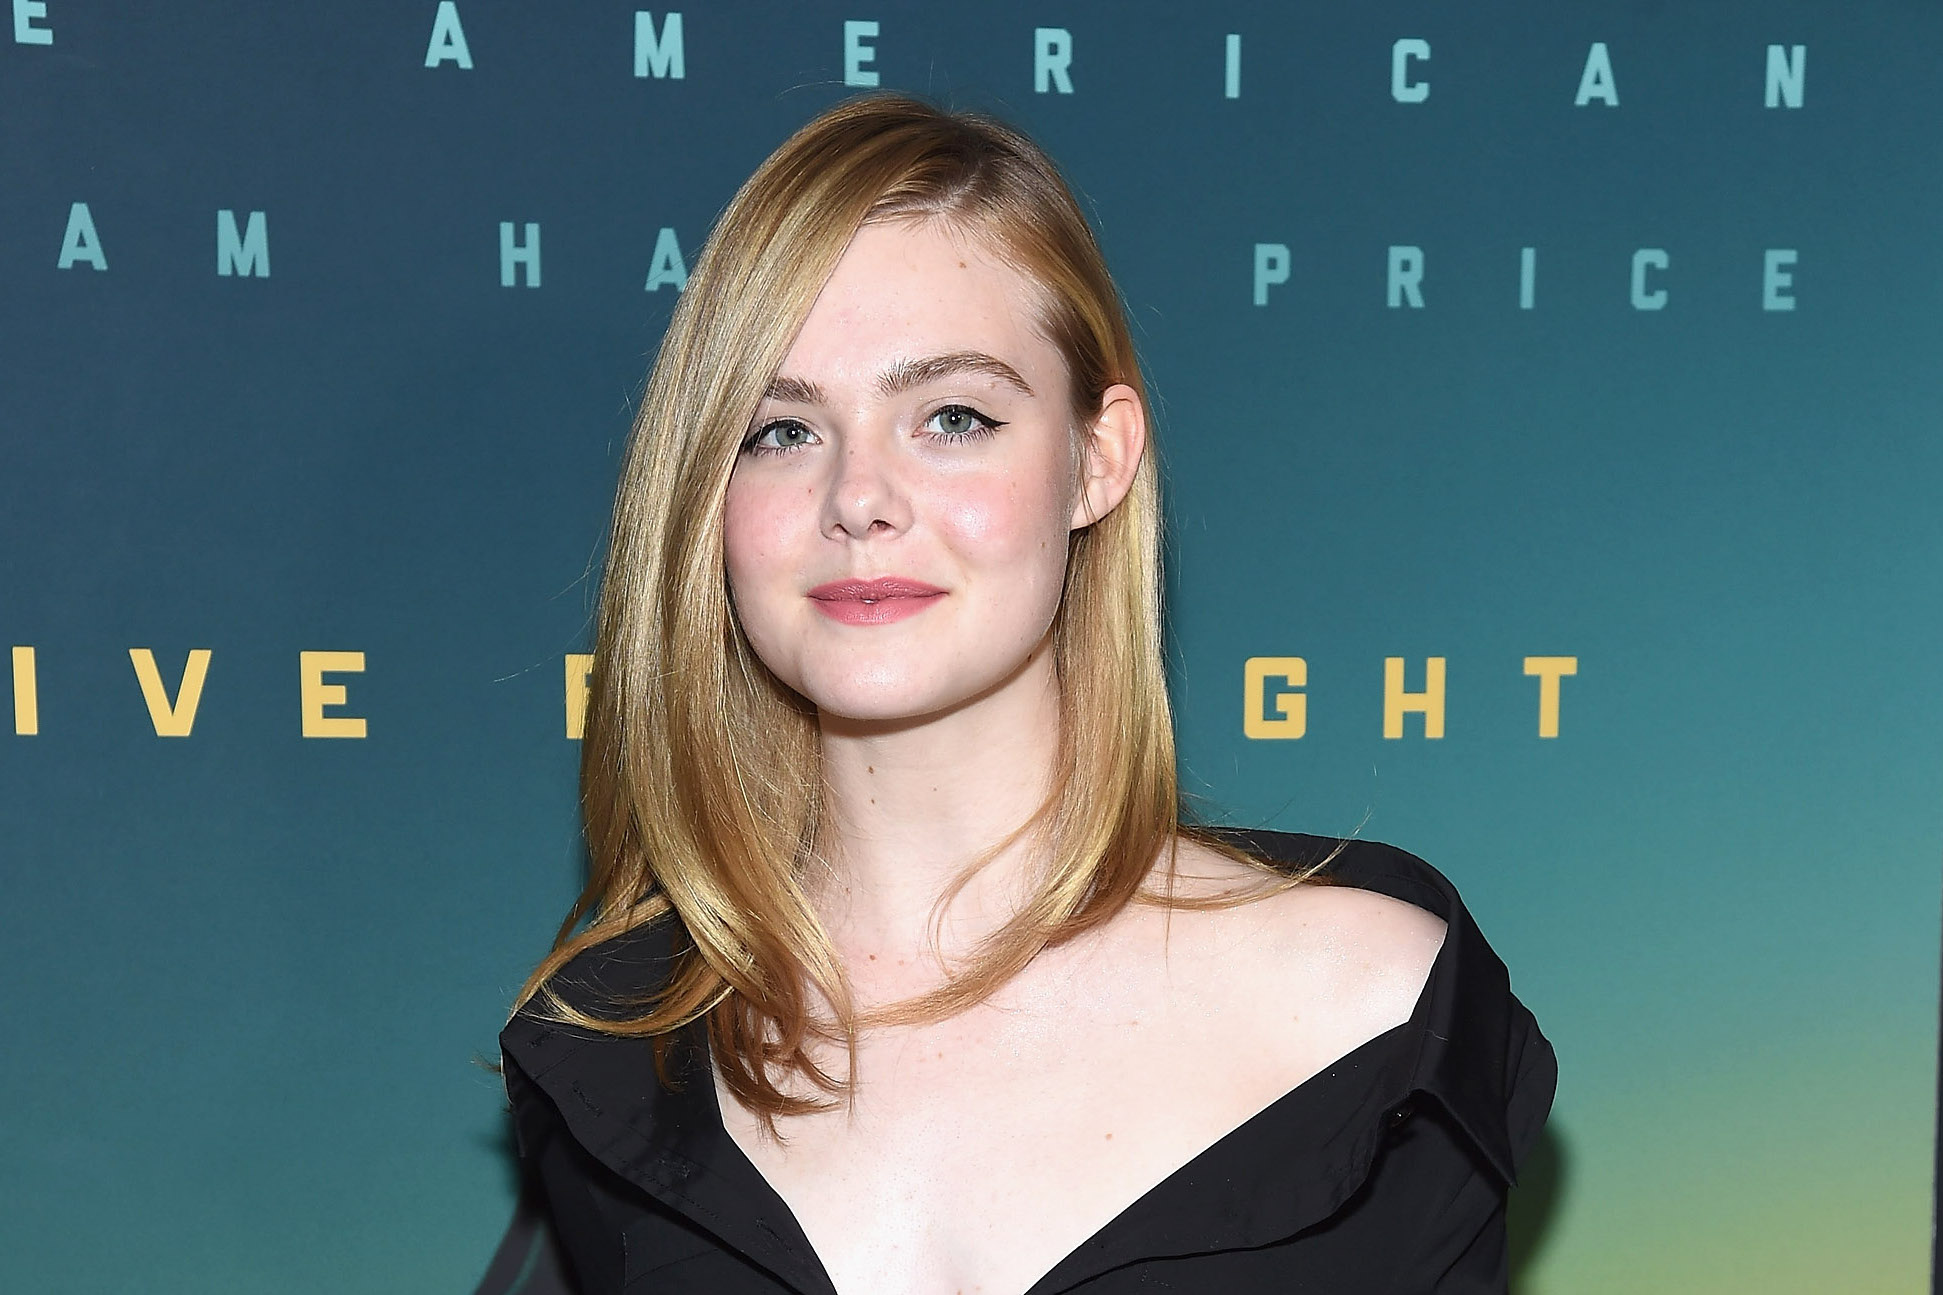 Elle Fanning looks like she's on her way to cast some spells in this gothic winter outfit